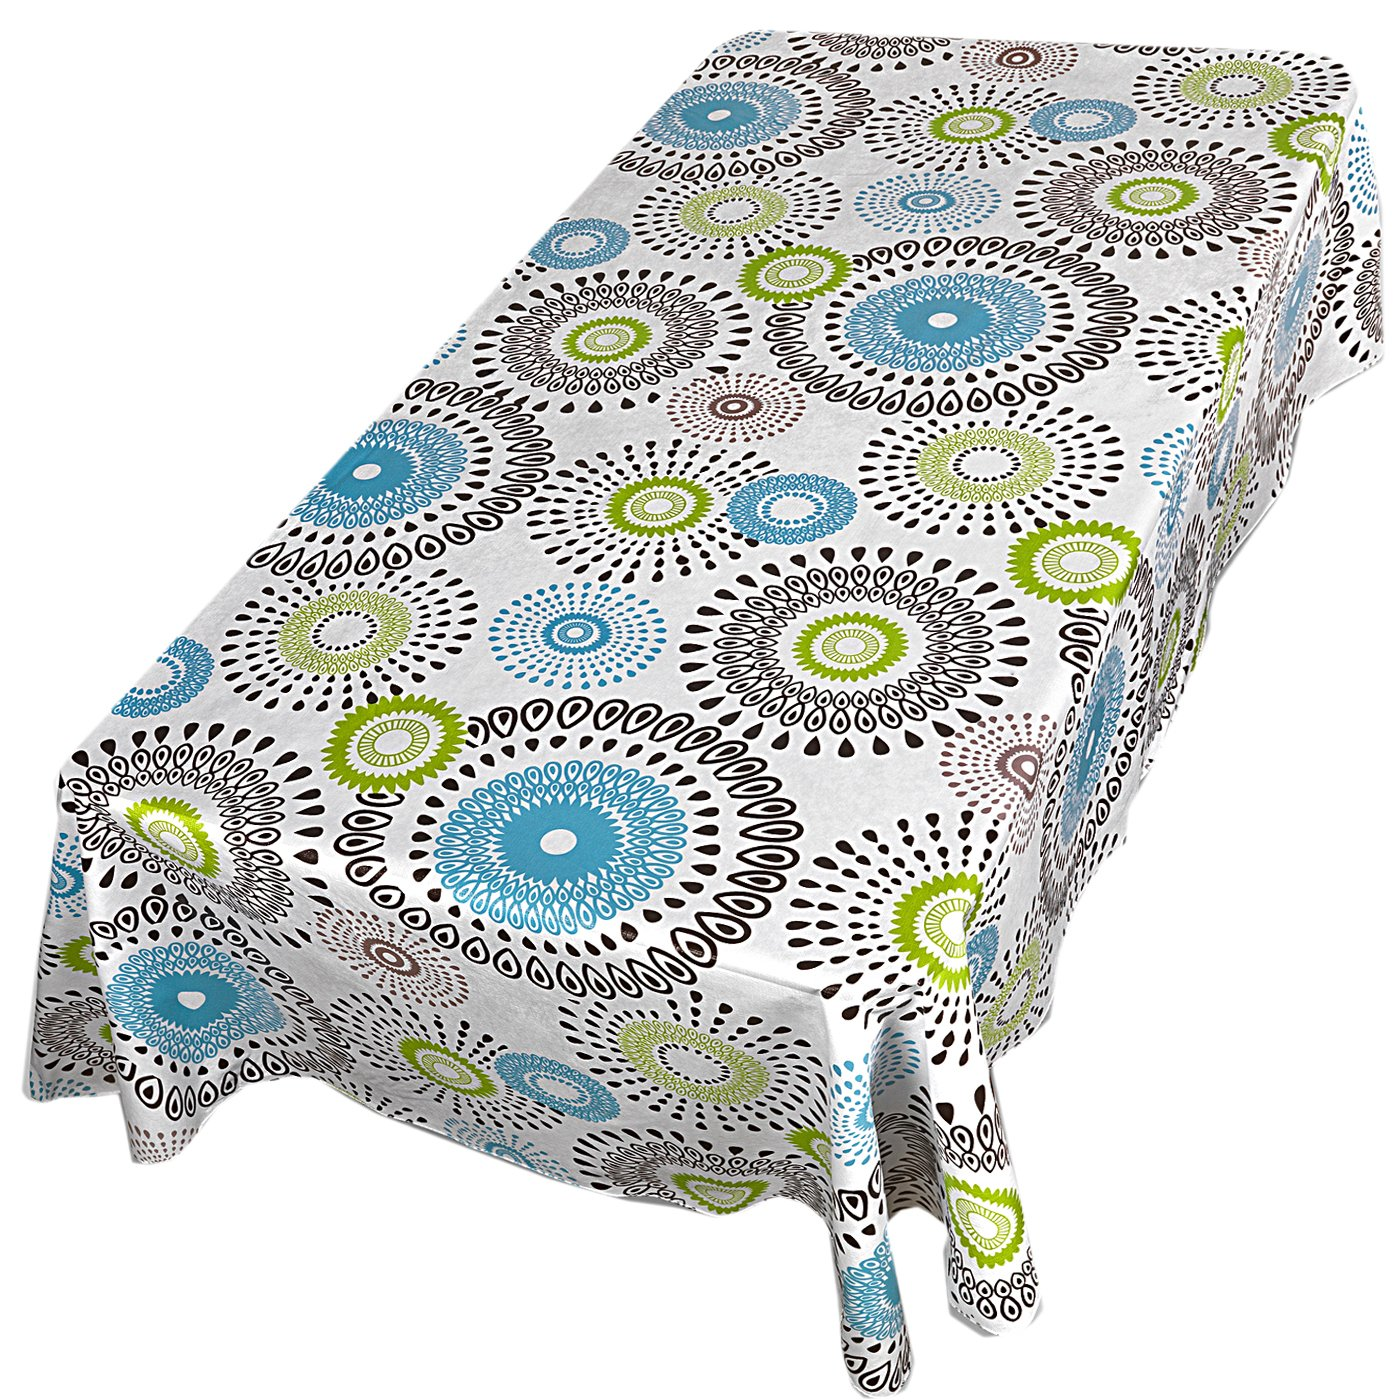 Whimsy Circle Contemporary Print Indoor/Outdoor Vinyl Flannel Backed Tablecloth - 70 Round by Home Bargains Plus (Image #3)